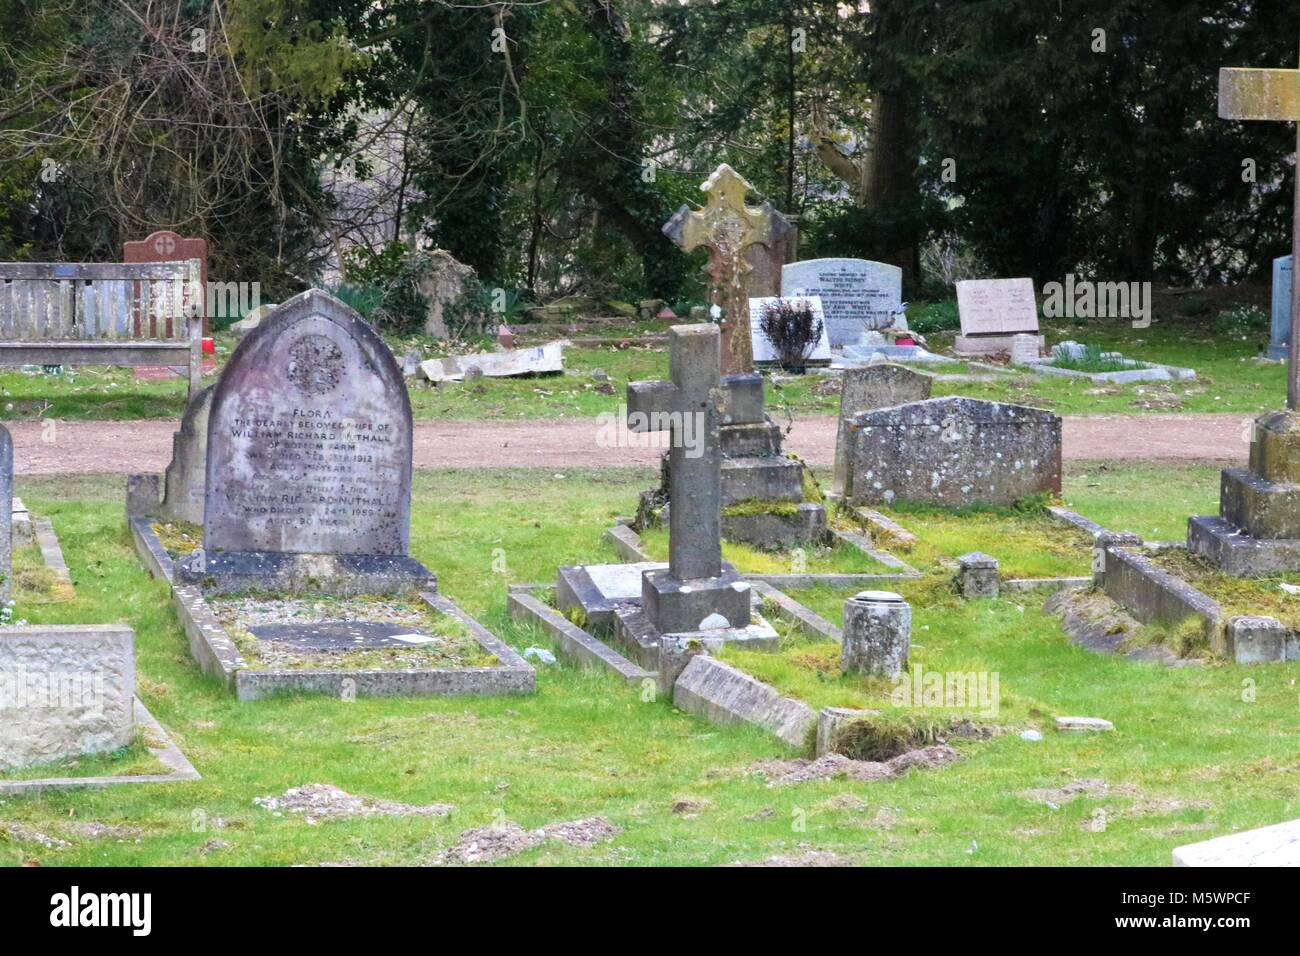 Headstone in graveyard at St Lawrence Church, West Wycombe, UK - Stock Image